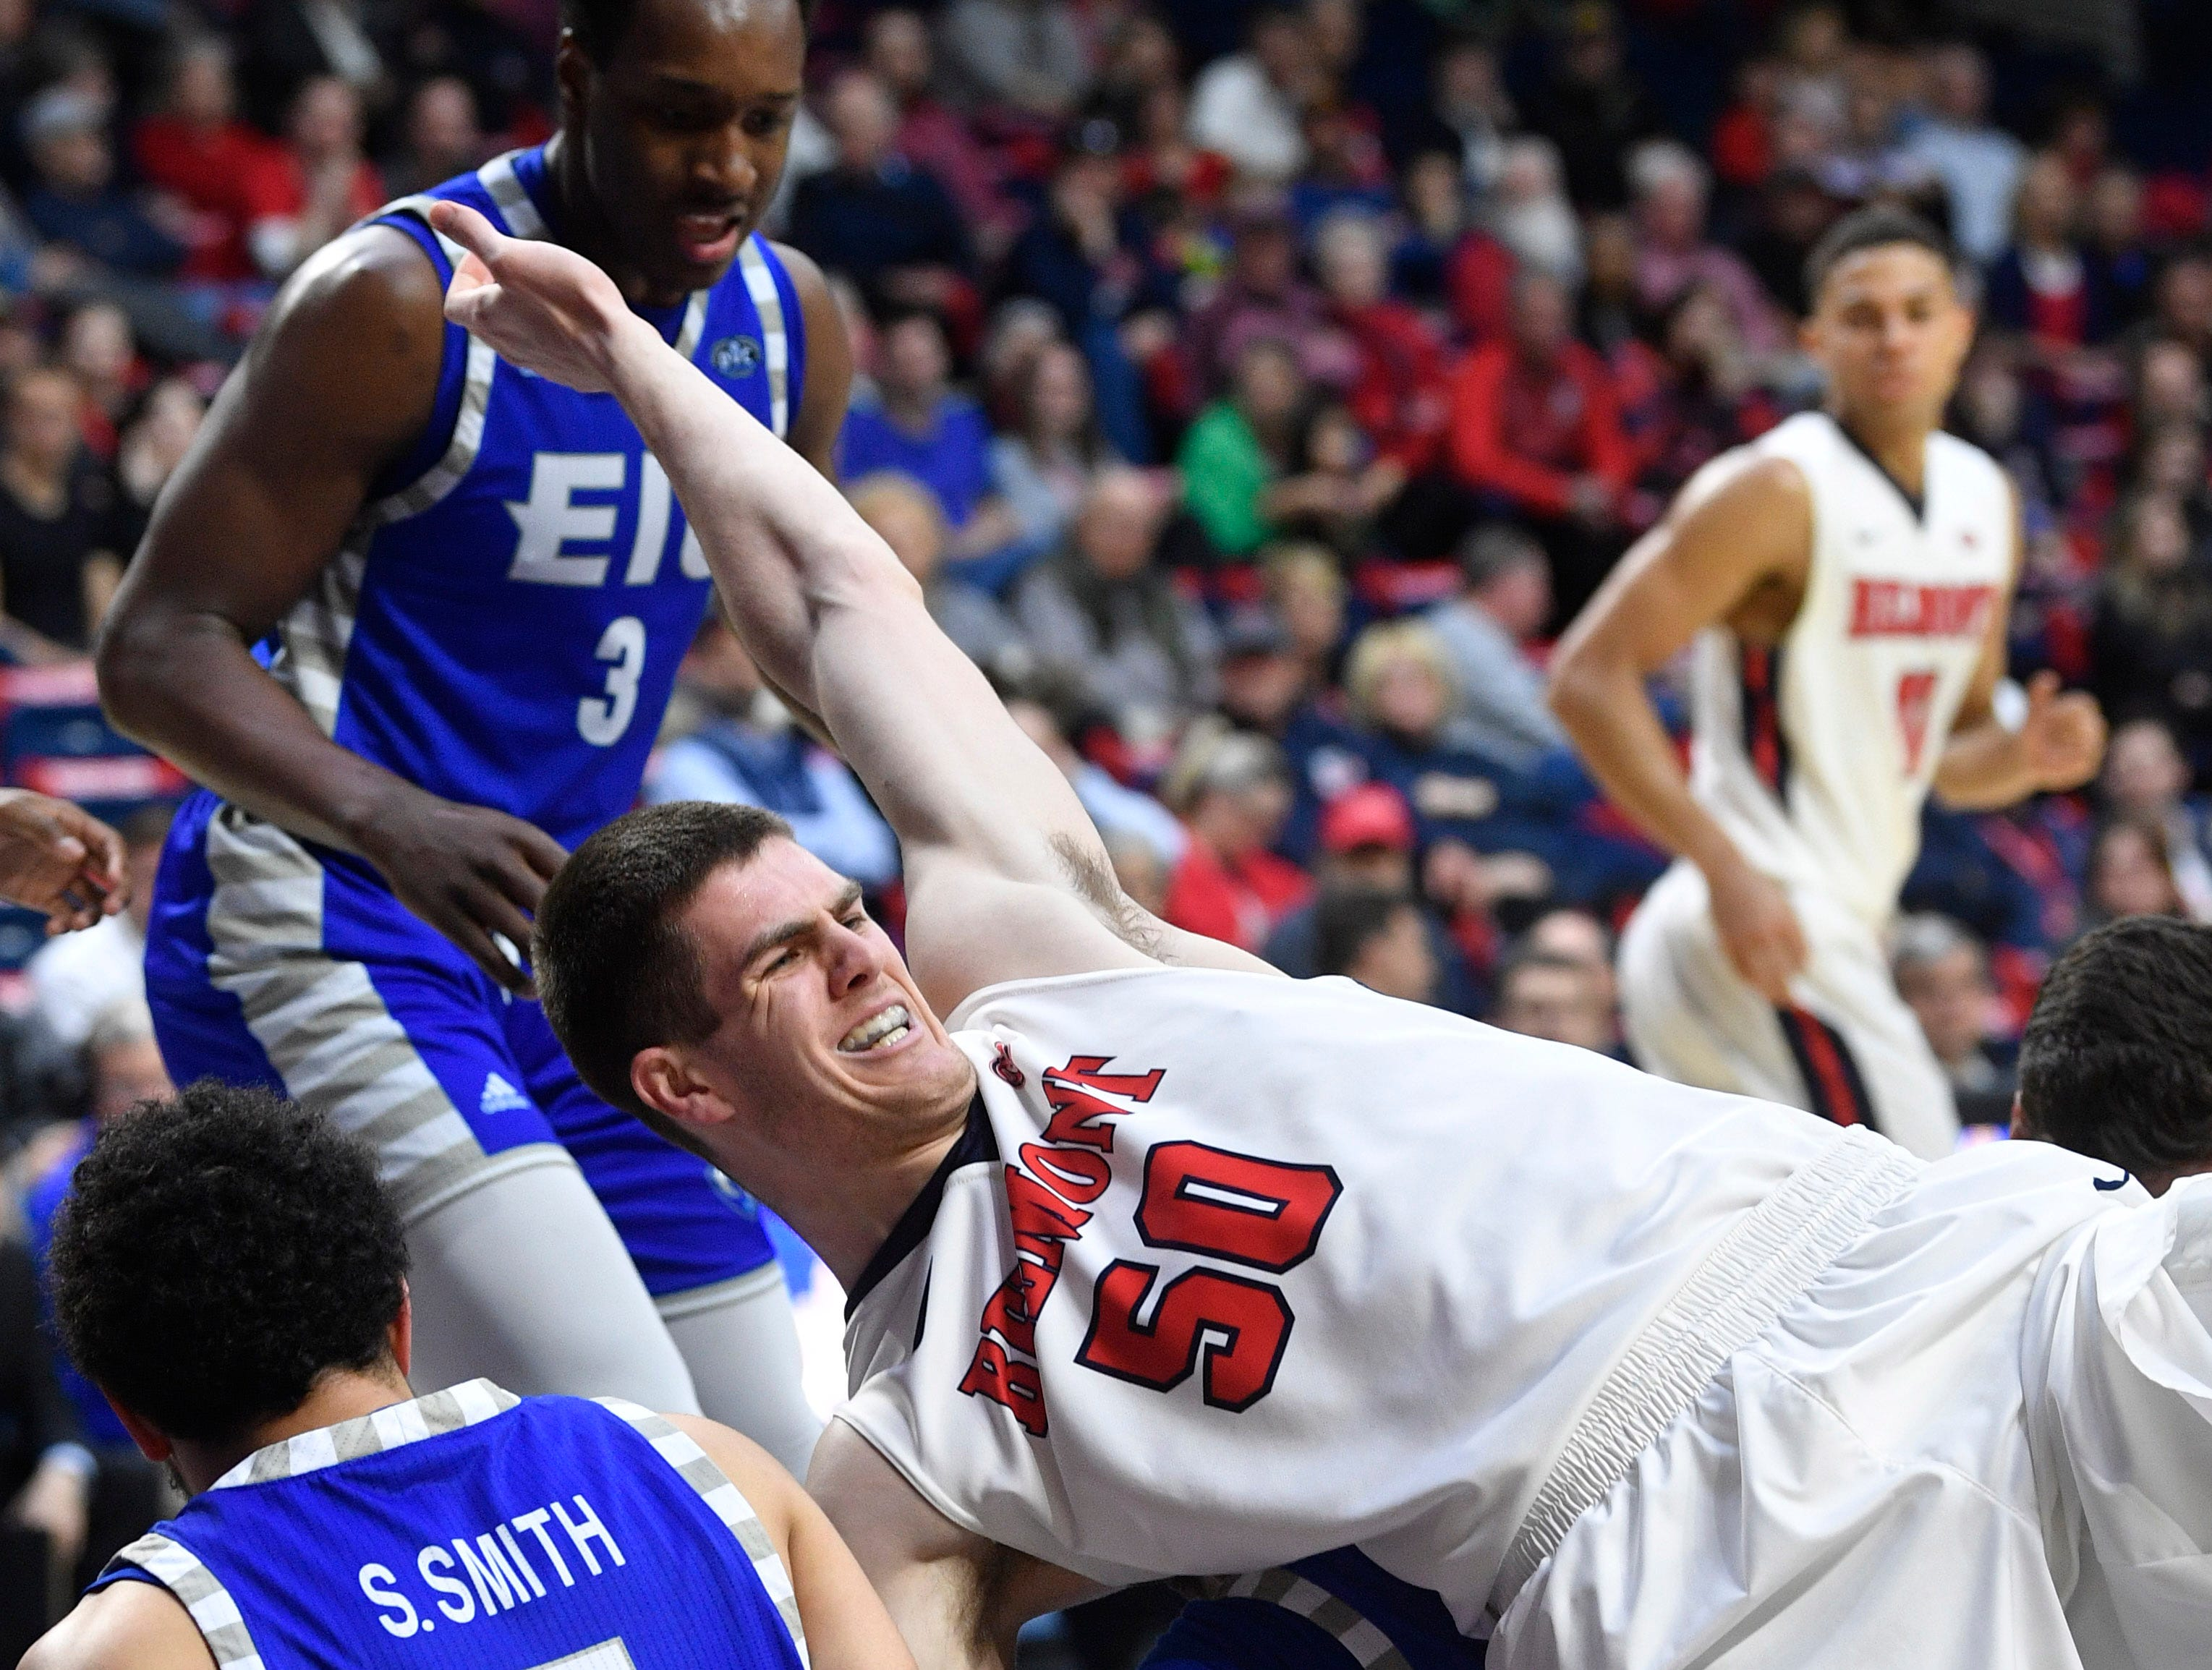 Seth Adelsperger gets his leg twisted going for a loose ball as Belmont plays Eastern Illinois in Curb Event Center Thursday, Feb. 21, 2019, in Nashville, Tenn. Flood stage is 40 feet.